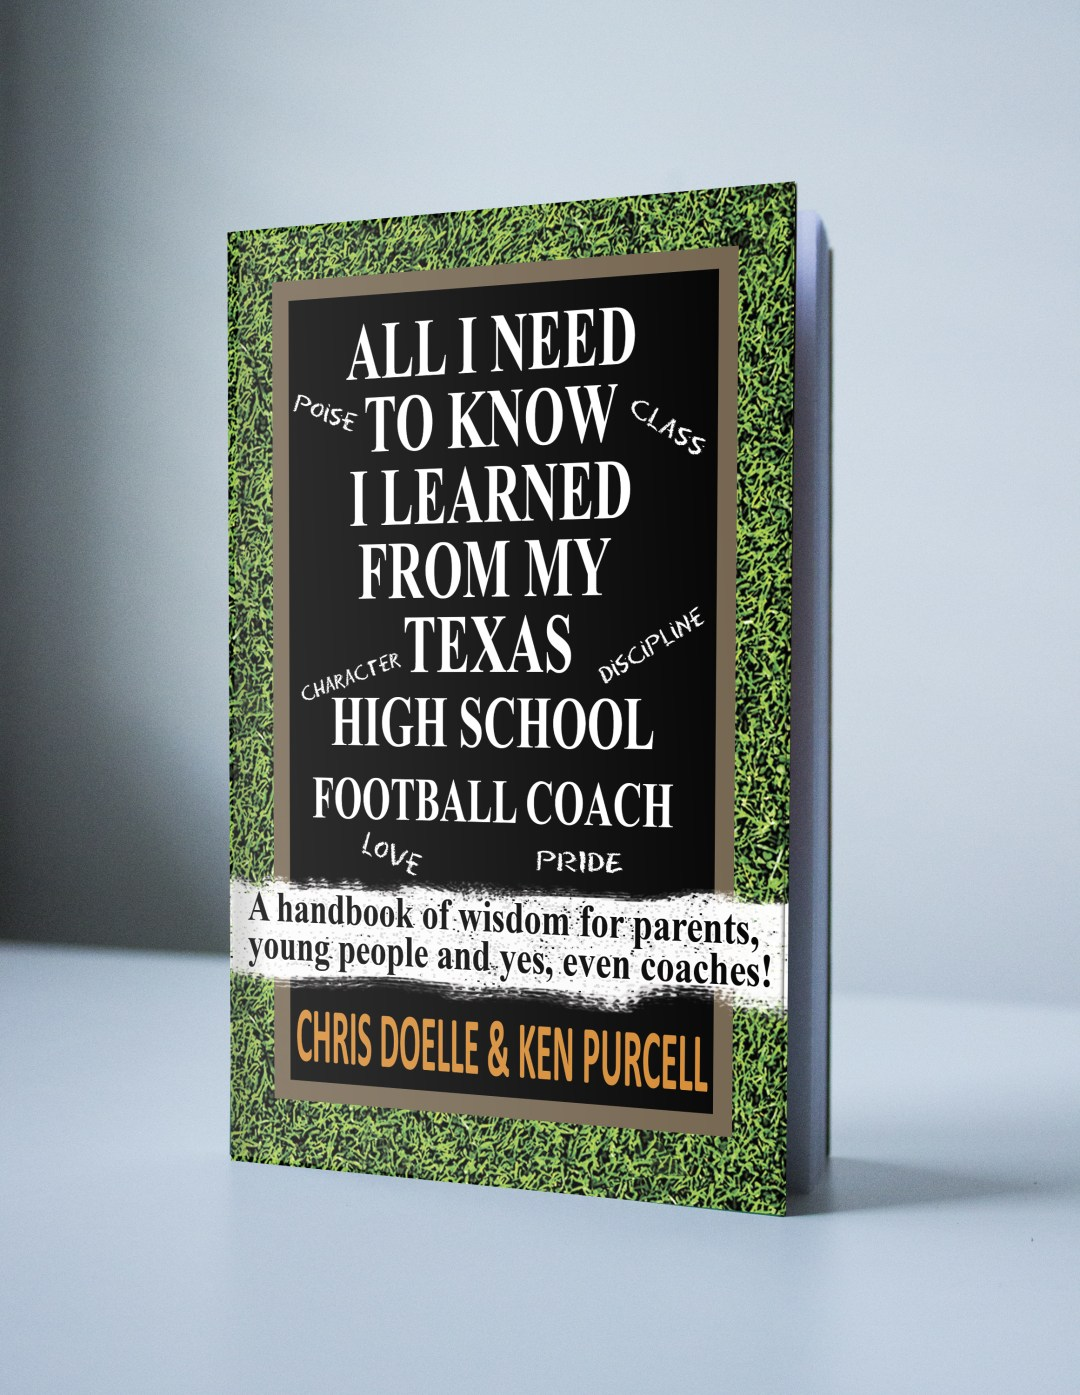 ALL I NEED TO KNOW I LEARNED FROM MY TEXAS HIGH SCHOOL FOOTBALL COACH 726373